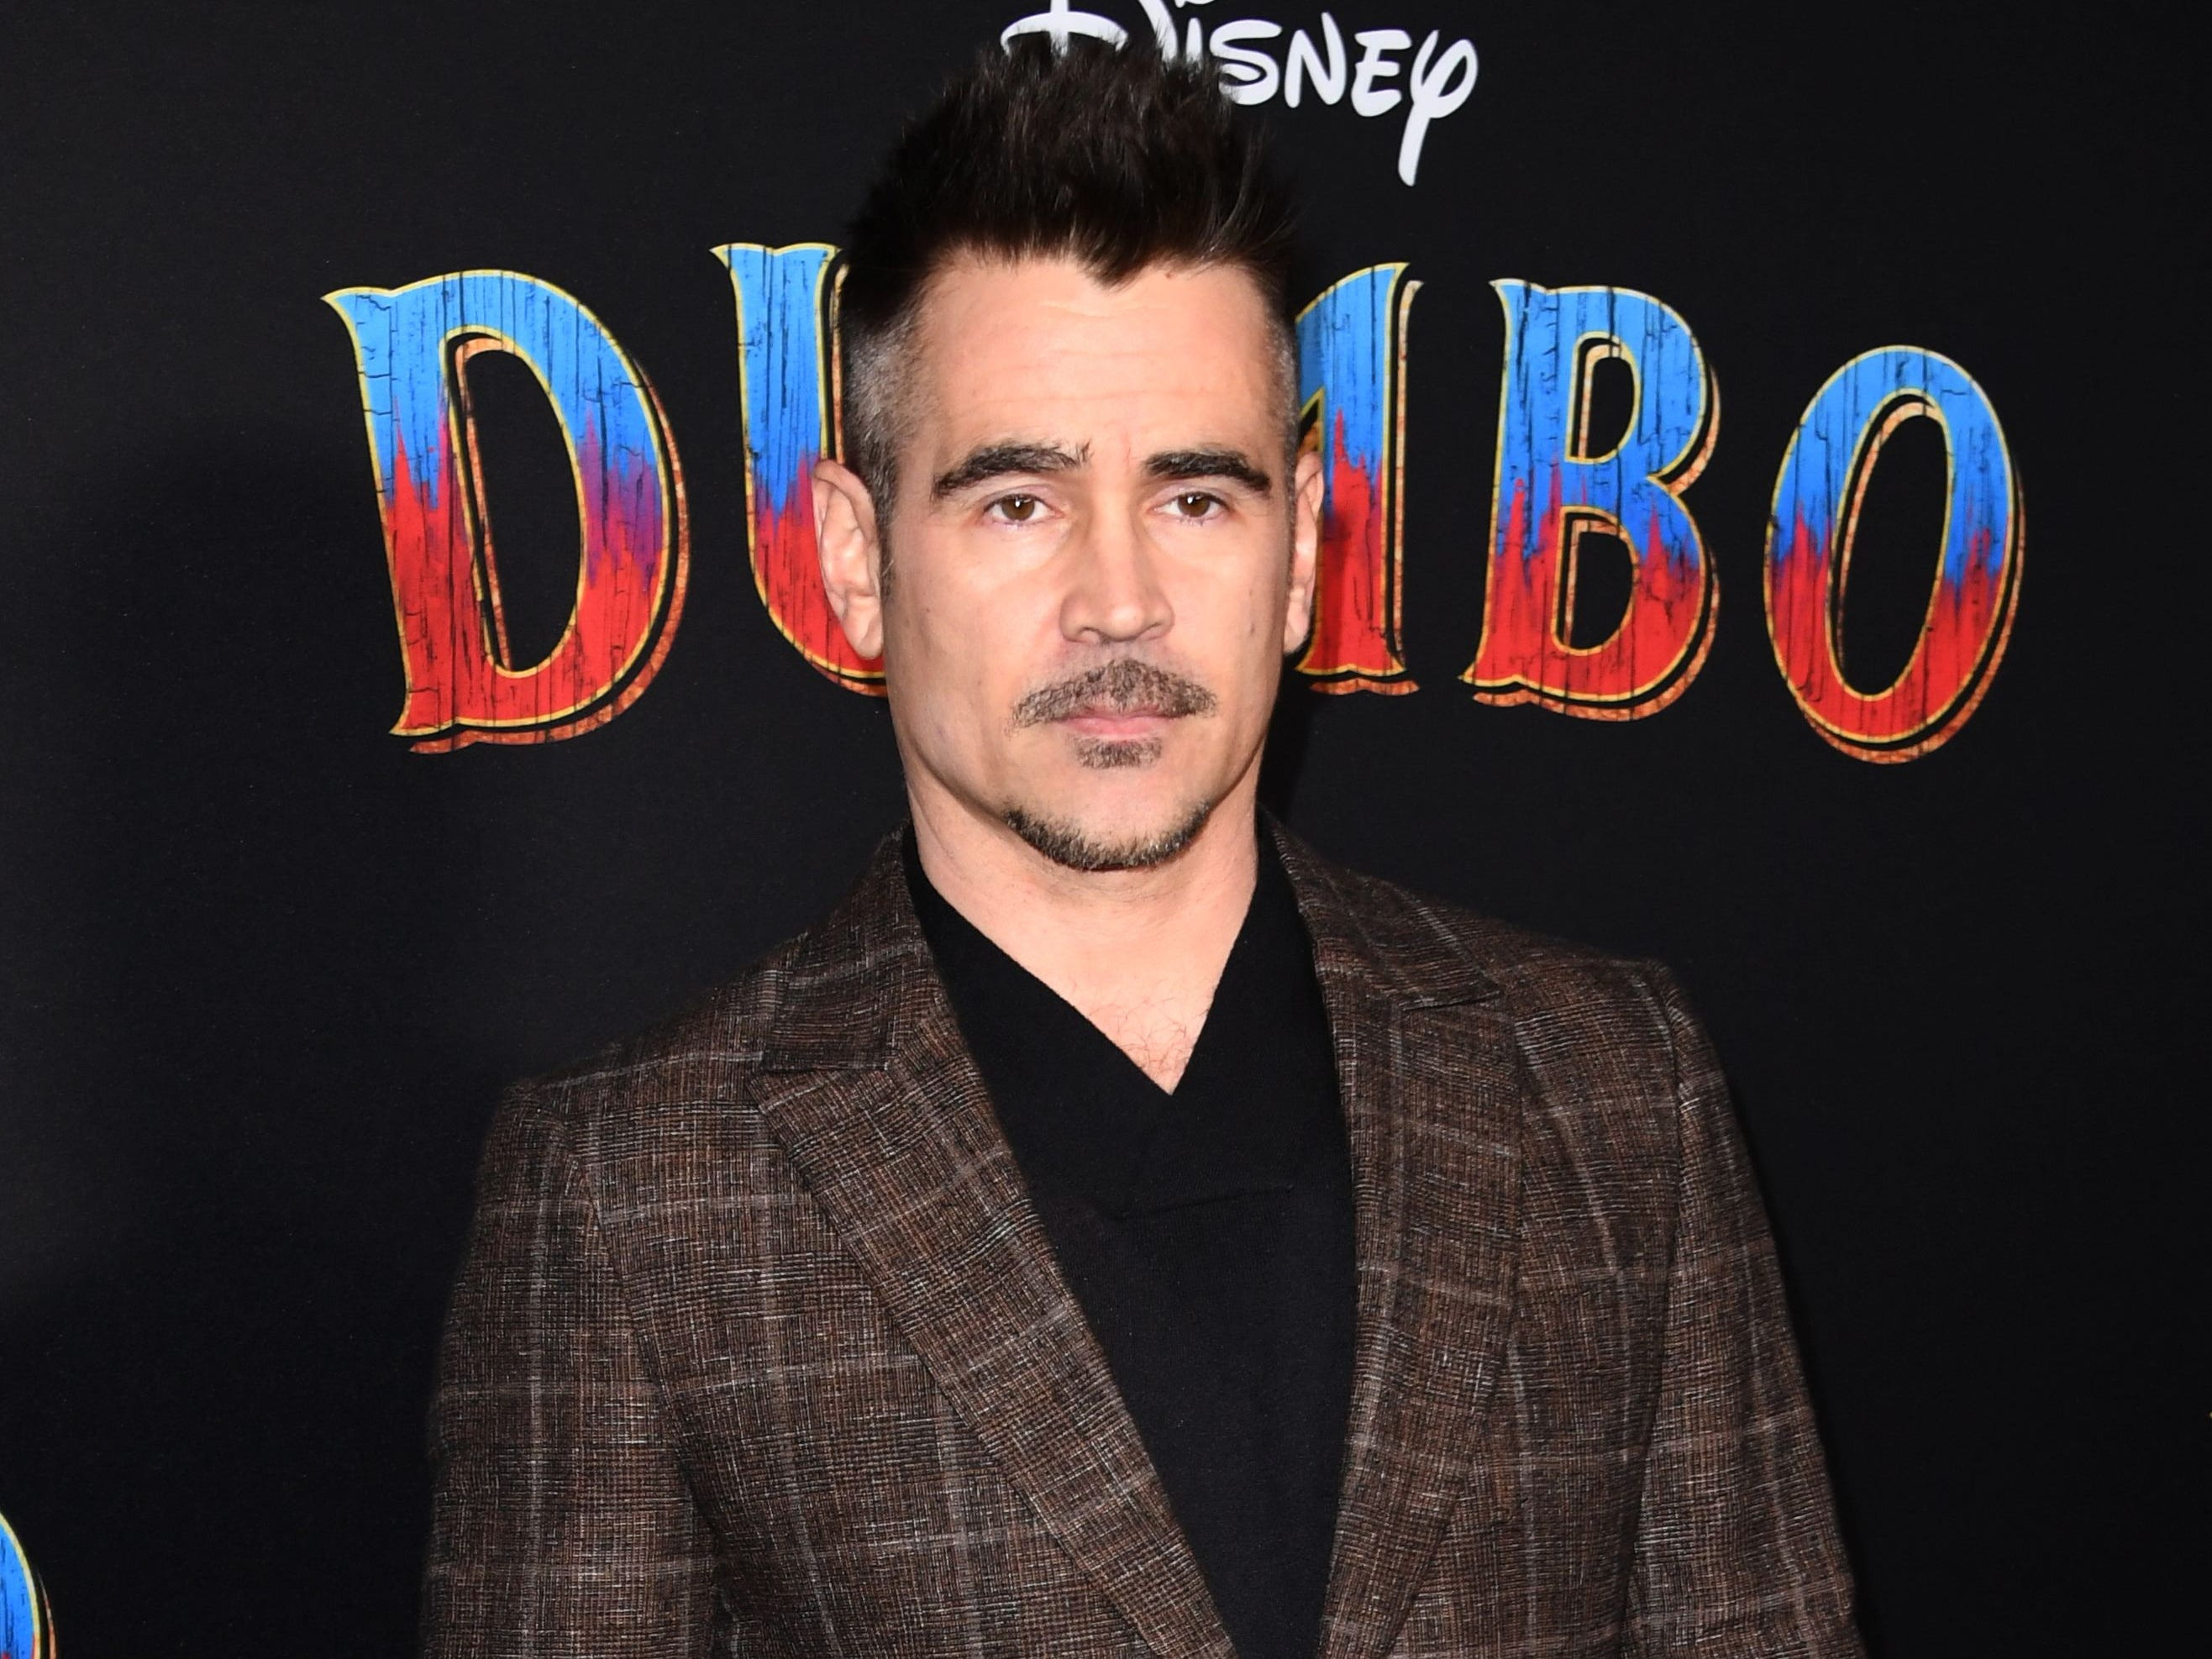 """Irish actor Colin Farrell arrives for the world premiere of Disney's """"Dumbo"""" at El Capitan theatre on March 11, 2019 in Hollywood. (Photo by Robyn Beck / AFP)ROBYN BECK/AFP/Getty Images ORG XMIT: Premiere ORIG FILE ID: AFP_1EI1U3"""